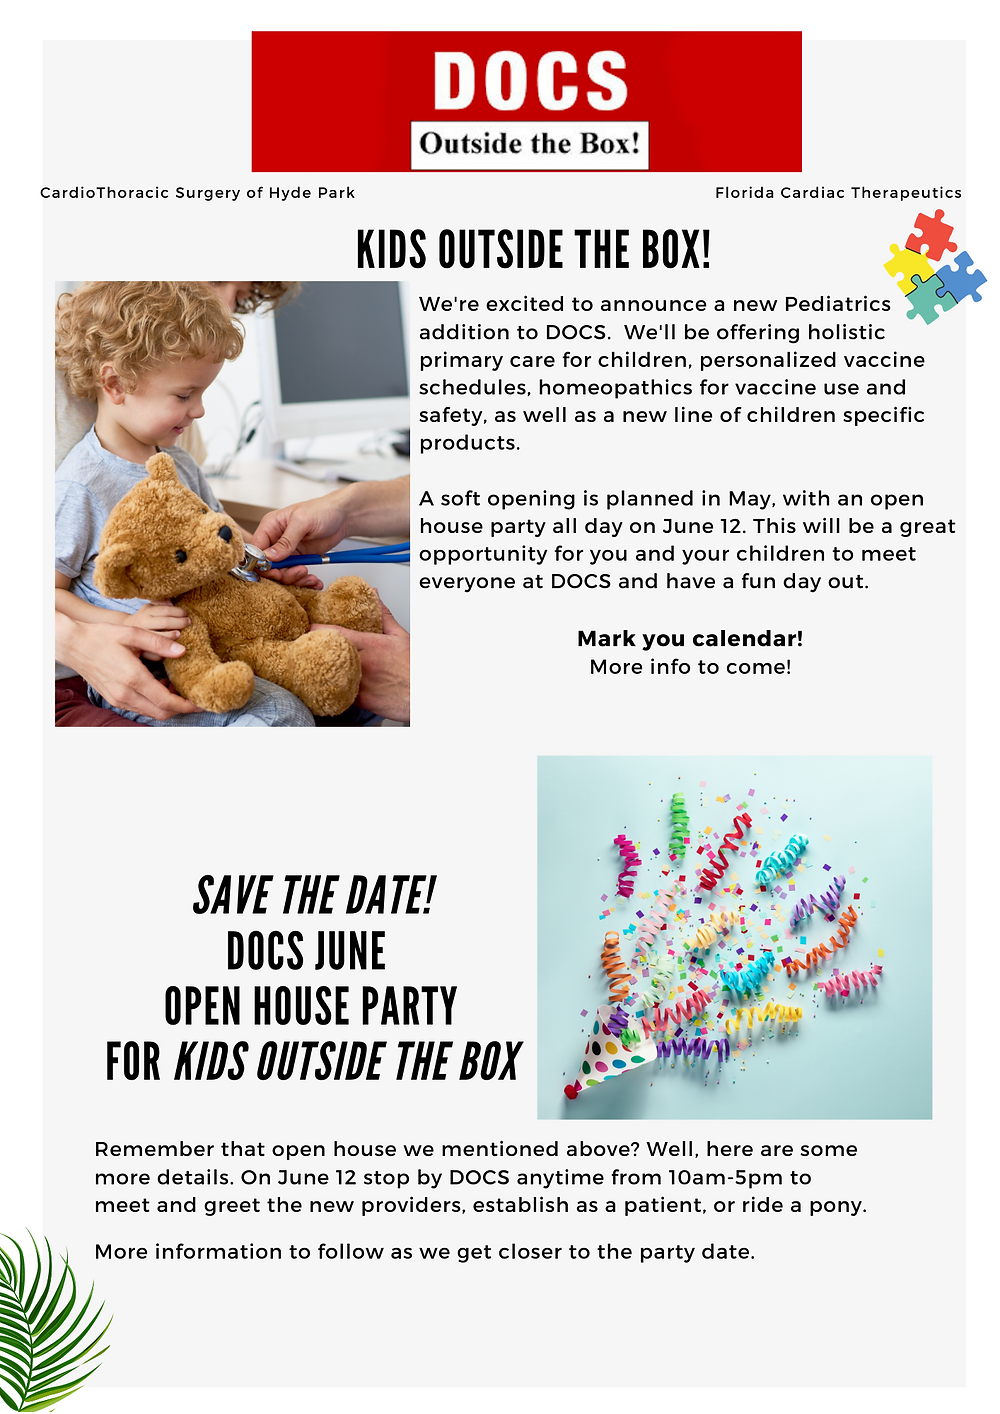 Text about DOCS opening a pediatrics unit in may with an open house party in June.